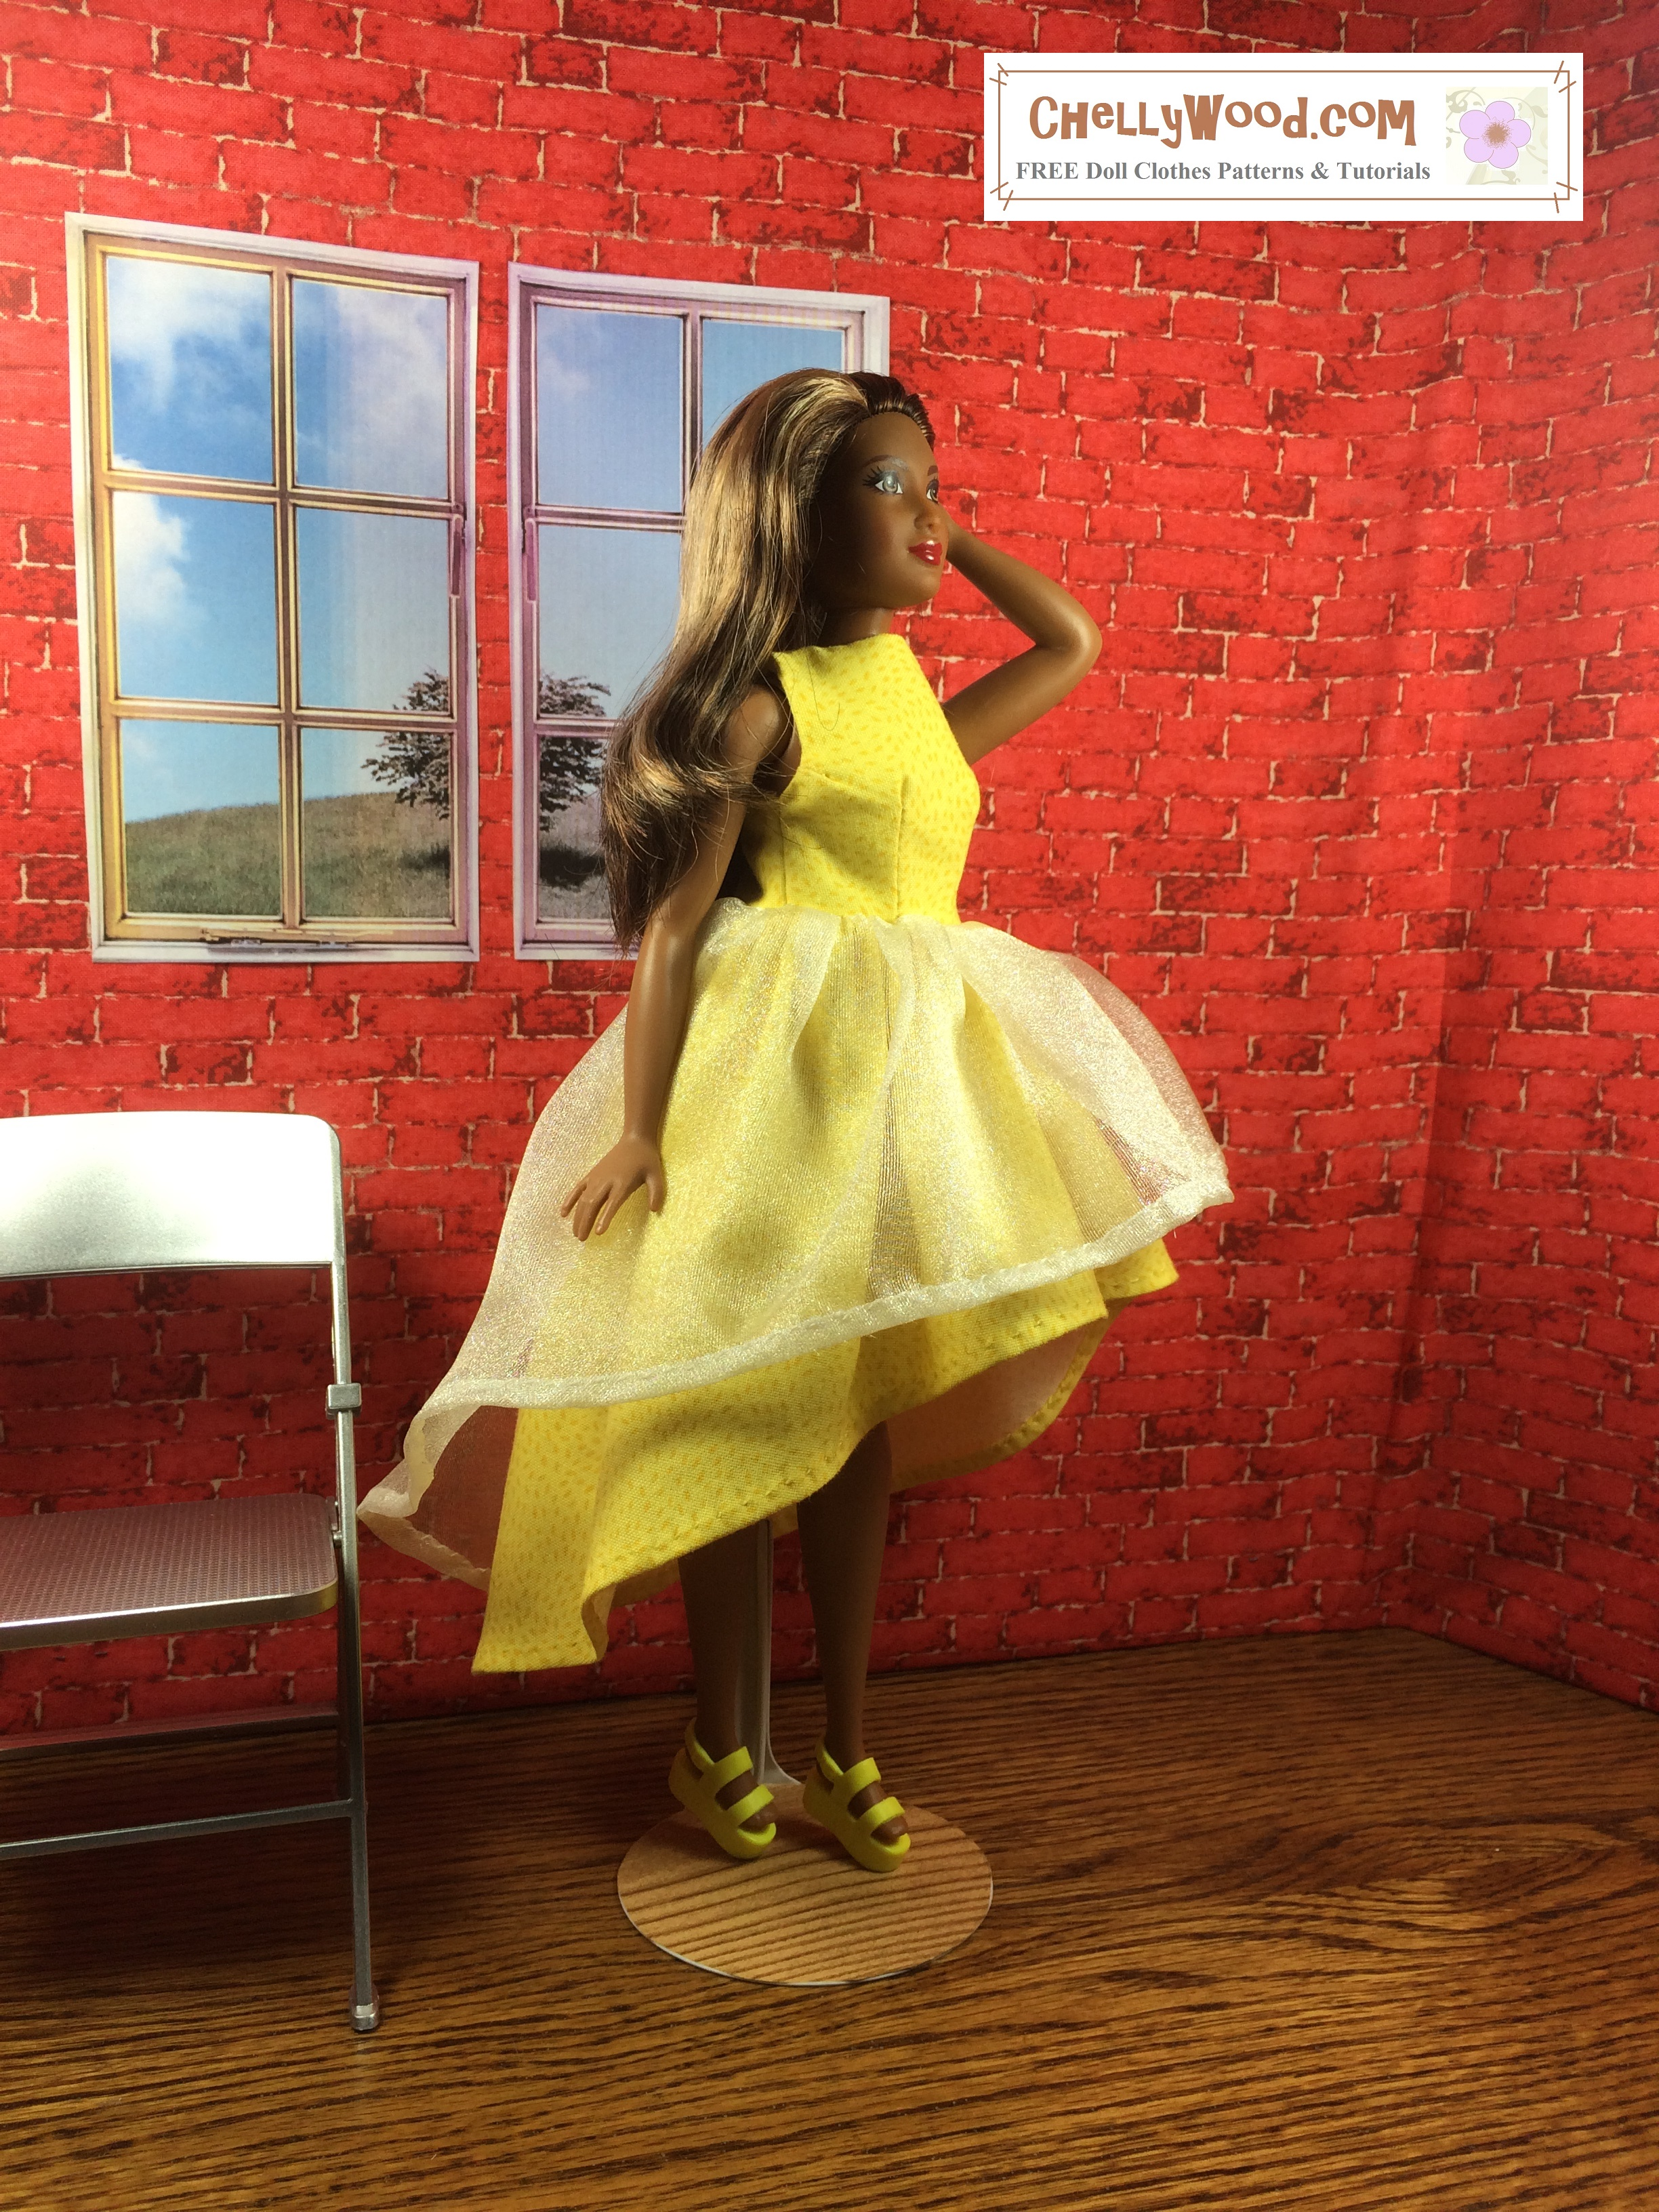 """Image of African American Fashionista Curvy Barbie from Mattel, posing in a yellow dress with a high-low skirt overlapped in filmy tulle. She poses with one hand in her hair and the other against the skirt's folds. Overlay says, """"ChellyWood.com: Free printable sewing patterns and tutorials."""" High Low Dress for Curvy Barbie with FREE Printable Sewing Pattern free printable sewing patterns to fit fashionista curvy Barbie free printable sewing patterns to fit ideal's Tammy doll tutorial for making sewing clothes for curvy barbies free printable sewing patterns lammily doll clothes fashionista curvy barbie can lammily and curvy barbies wear the same doll clothes sizes ? how to make doll clothes for curvy barbie dolls Image of African American Fashionista Curvy Barbie from Mattel, posing in a yellow dress with a high-low skirt overlapped in filmy tulle. She poses with one hand in her hair and the other against the skirt's folds. Overlay says, """"ChellyWood.com: Free printable sewing patterns and tutorials."""" High Low Dress for Curvy Barbie with FREE Printable Sewing Pattern free printable sewing patterns to fit fashionista curvy Barbie free printable sewing patterns to fit ideal's Tammy doll tutorial for making sewing clothes for curvy barbies free printable sewing patterns lammily doll clothes fashionista curvy barbie can lammily and curvy barbies wear the same doll clothes sizes ? how to make doll clothes for curvy barbie dolls Image of African American Fashionista Curvy Barbie from Mattel, posing in a yellow dress with a high-low skirt overlapped in filmy tulle. She poses with one hand in her hair and the other against the skirt's folds. Overlay says, """"ChellyWood.com: Free printable sewing patterns and tutorials."""" High Low Dress for Curvy Barbie with FREE Printable Sewing Pattern free printable sewing patterns to fit fashionista curvy Barbie free printable sewing patterns to fit ideal's Tammy doll tutorial for making sewing clothes for curvy barbies free printable sewing"""